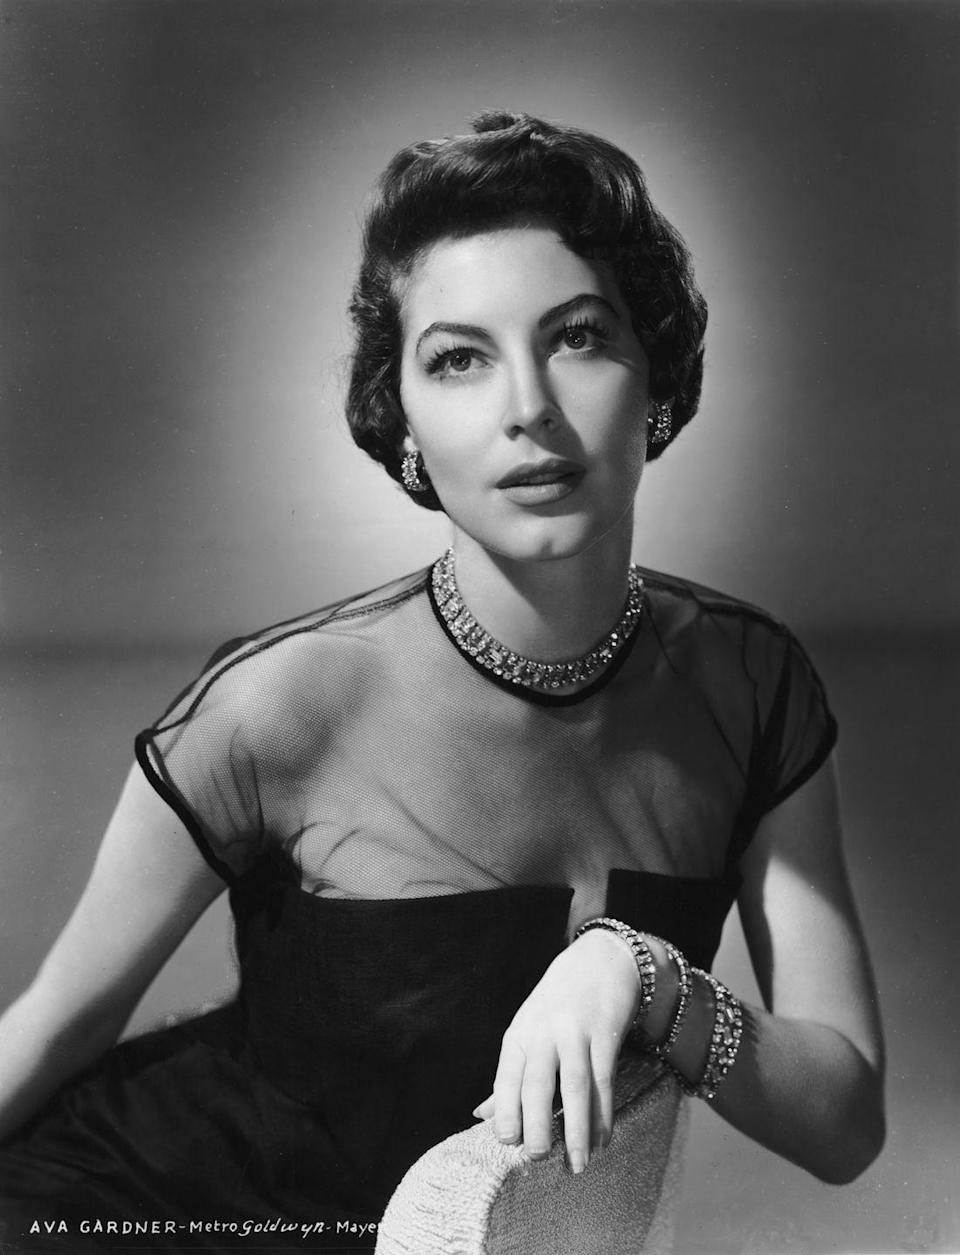 <p>Here, a studio portrait of the American actress showcases her timeless appeal and style. Women of today, take note: A diamond jewelry suite, a netted bodice, and a little black dress are always en vogue. <br></p>